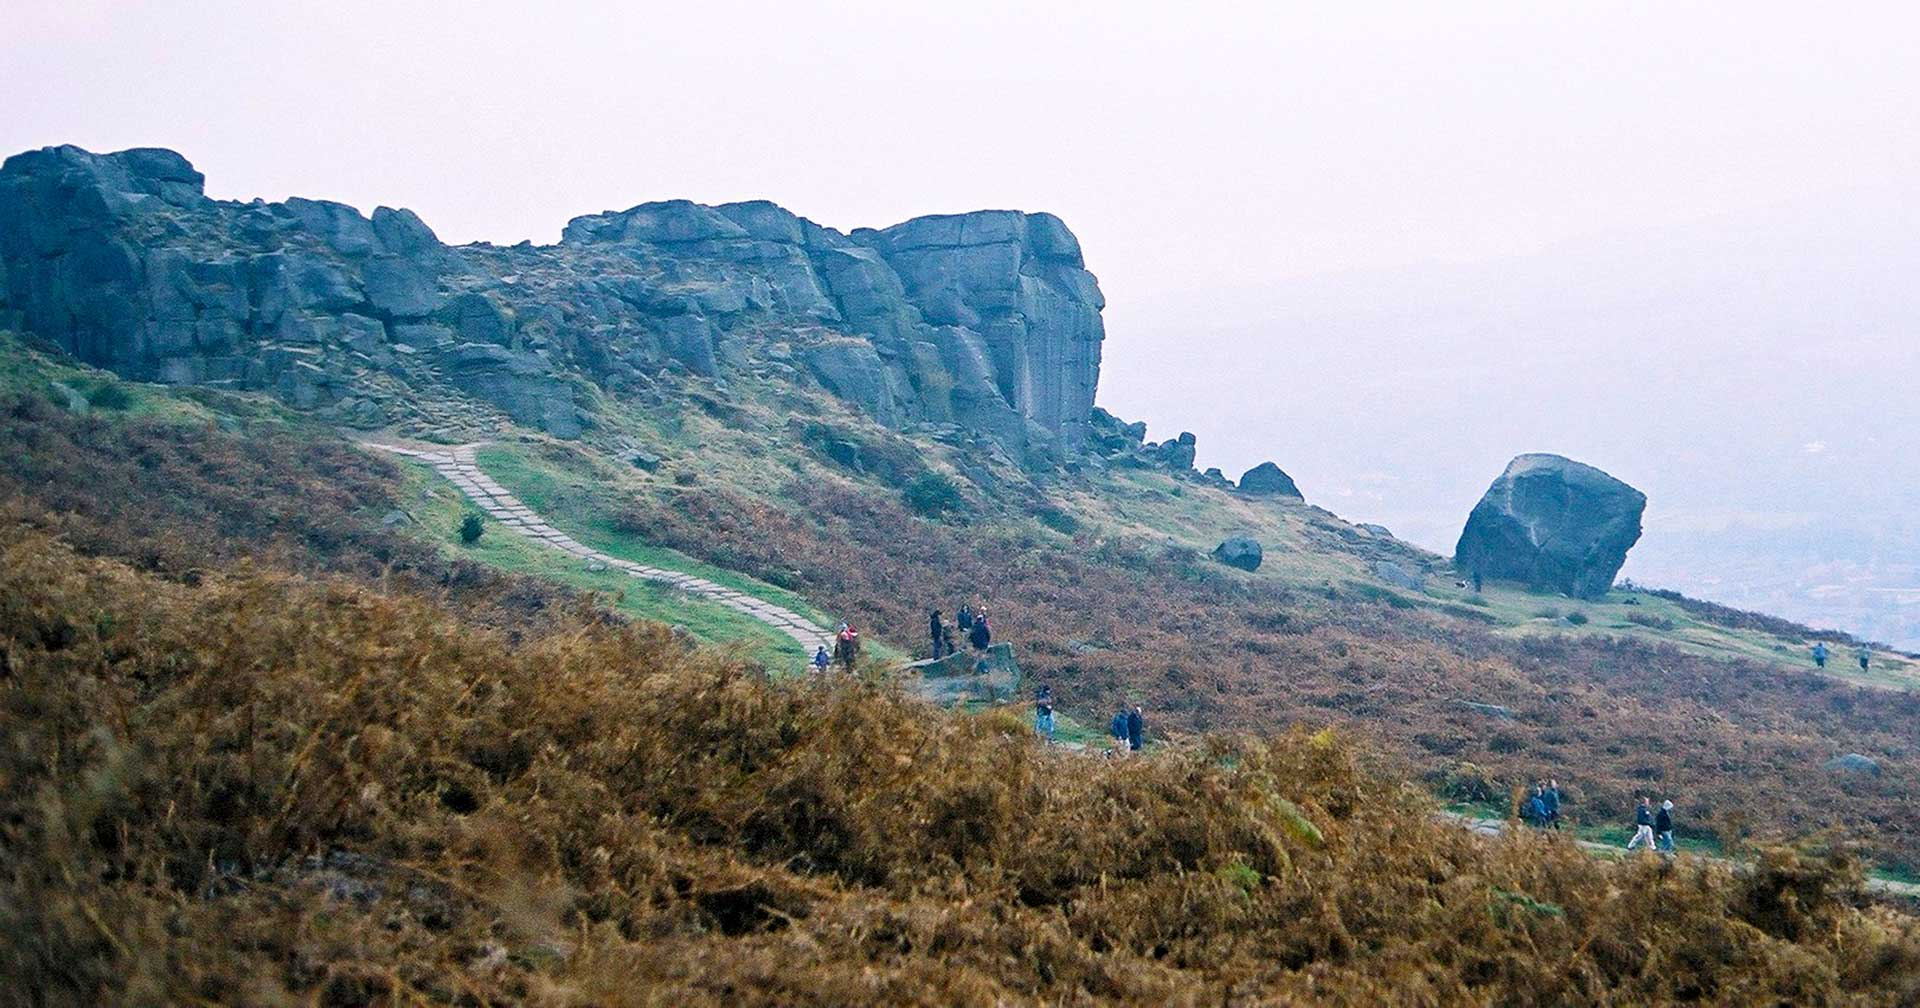 Cow & Calf rocks, Ilkley Moor - photo by Andy Hemingway